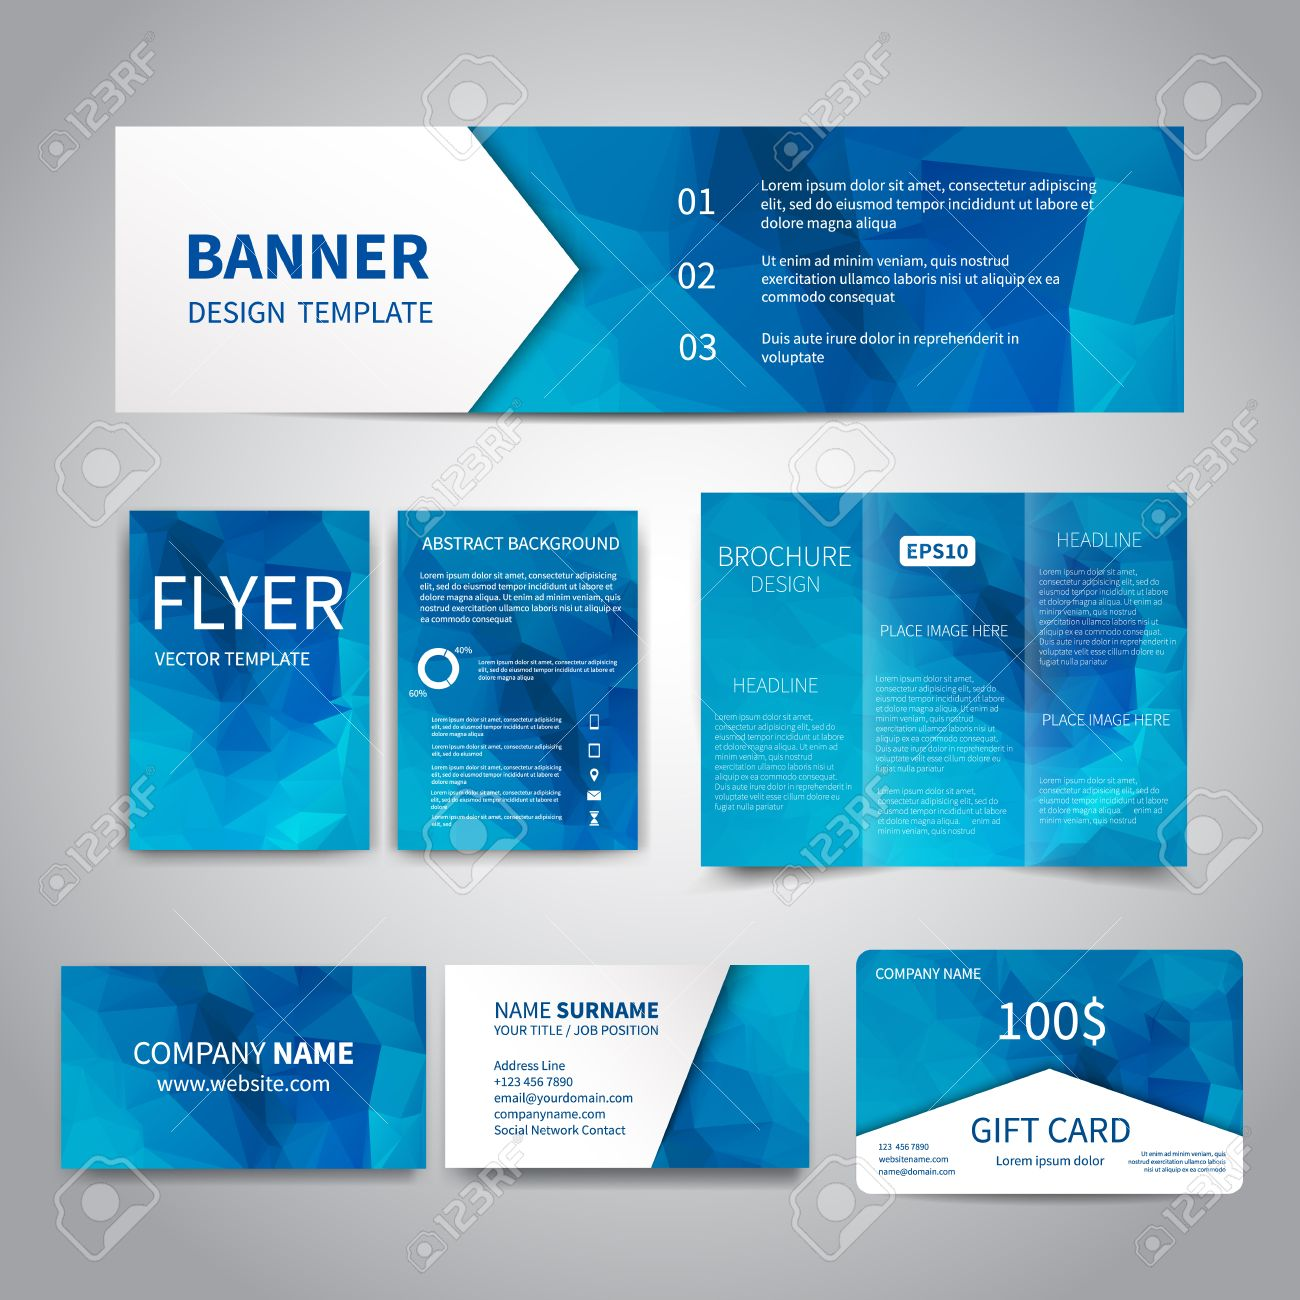 Banner flyers brochure business cards gift card design templates banner flyers brochure business cards gift card design templates set with geometric reheart Gallery